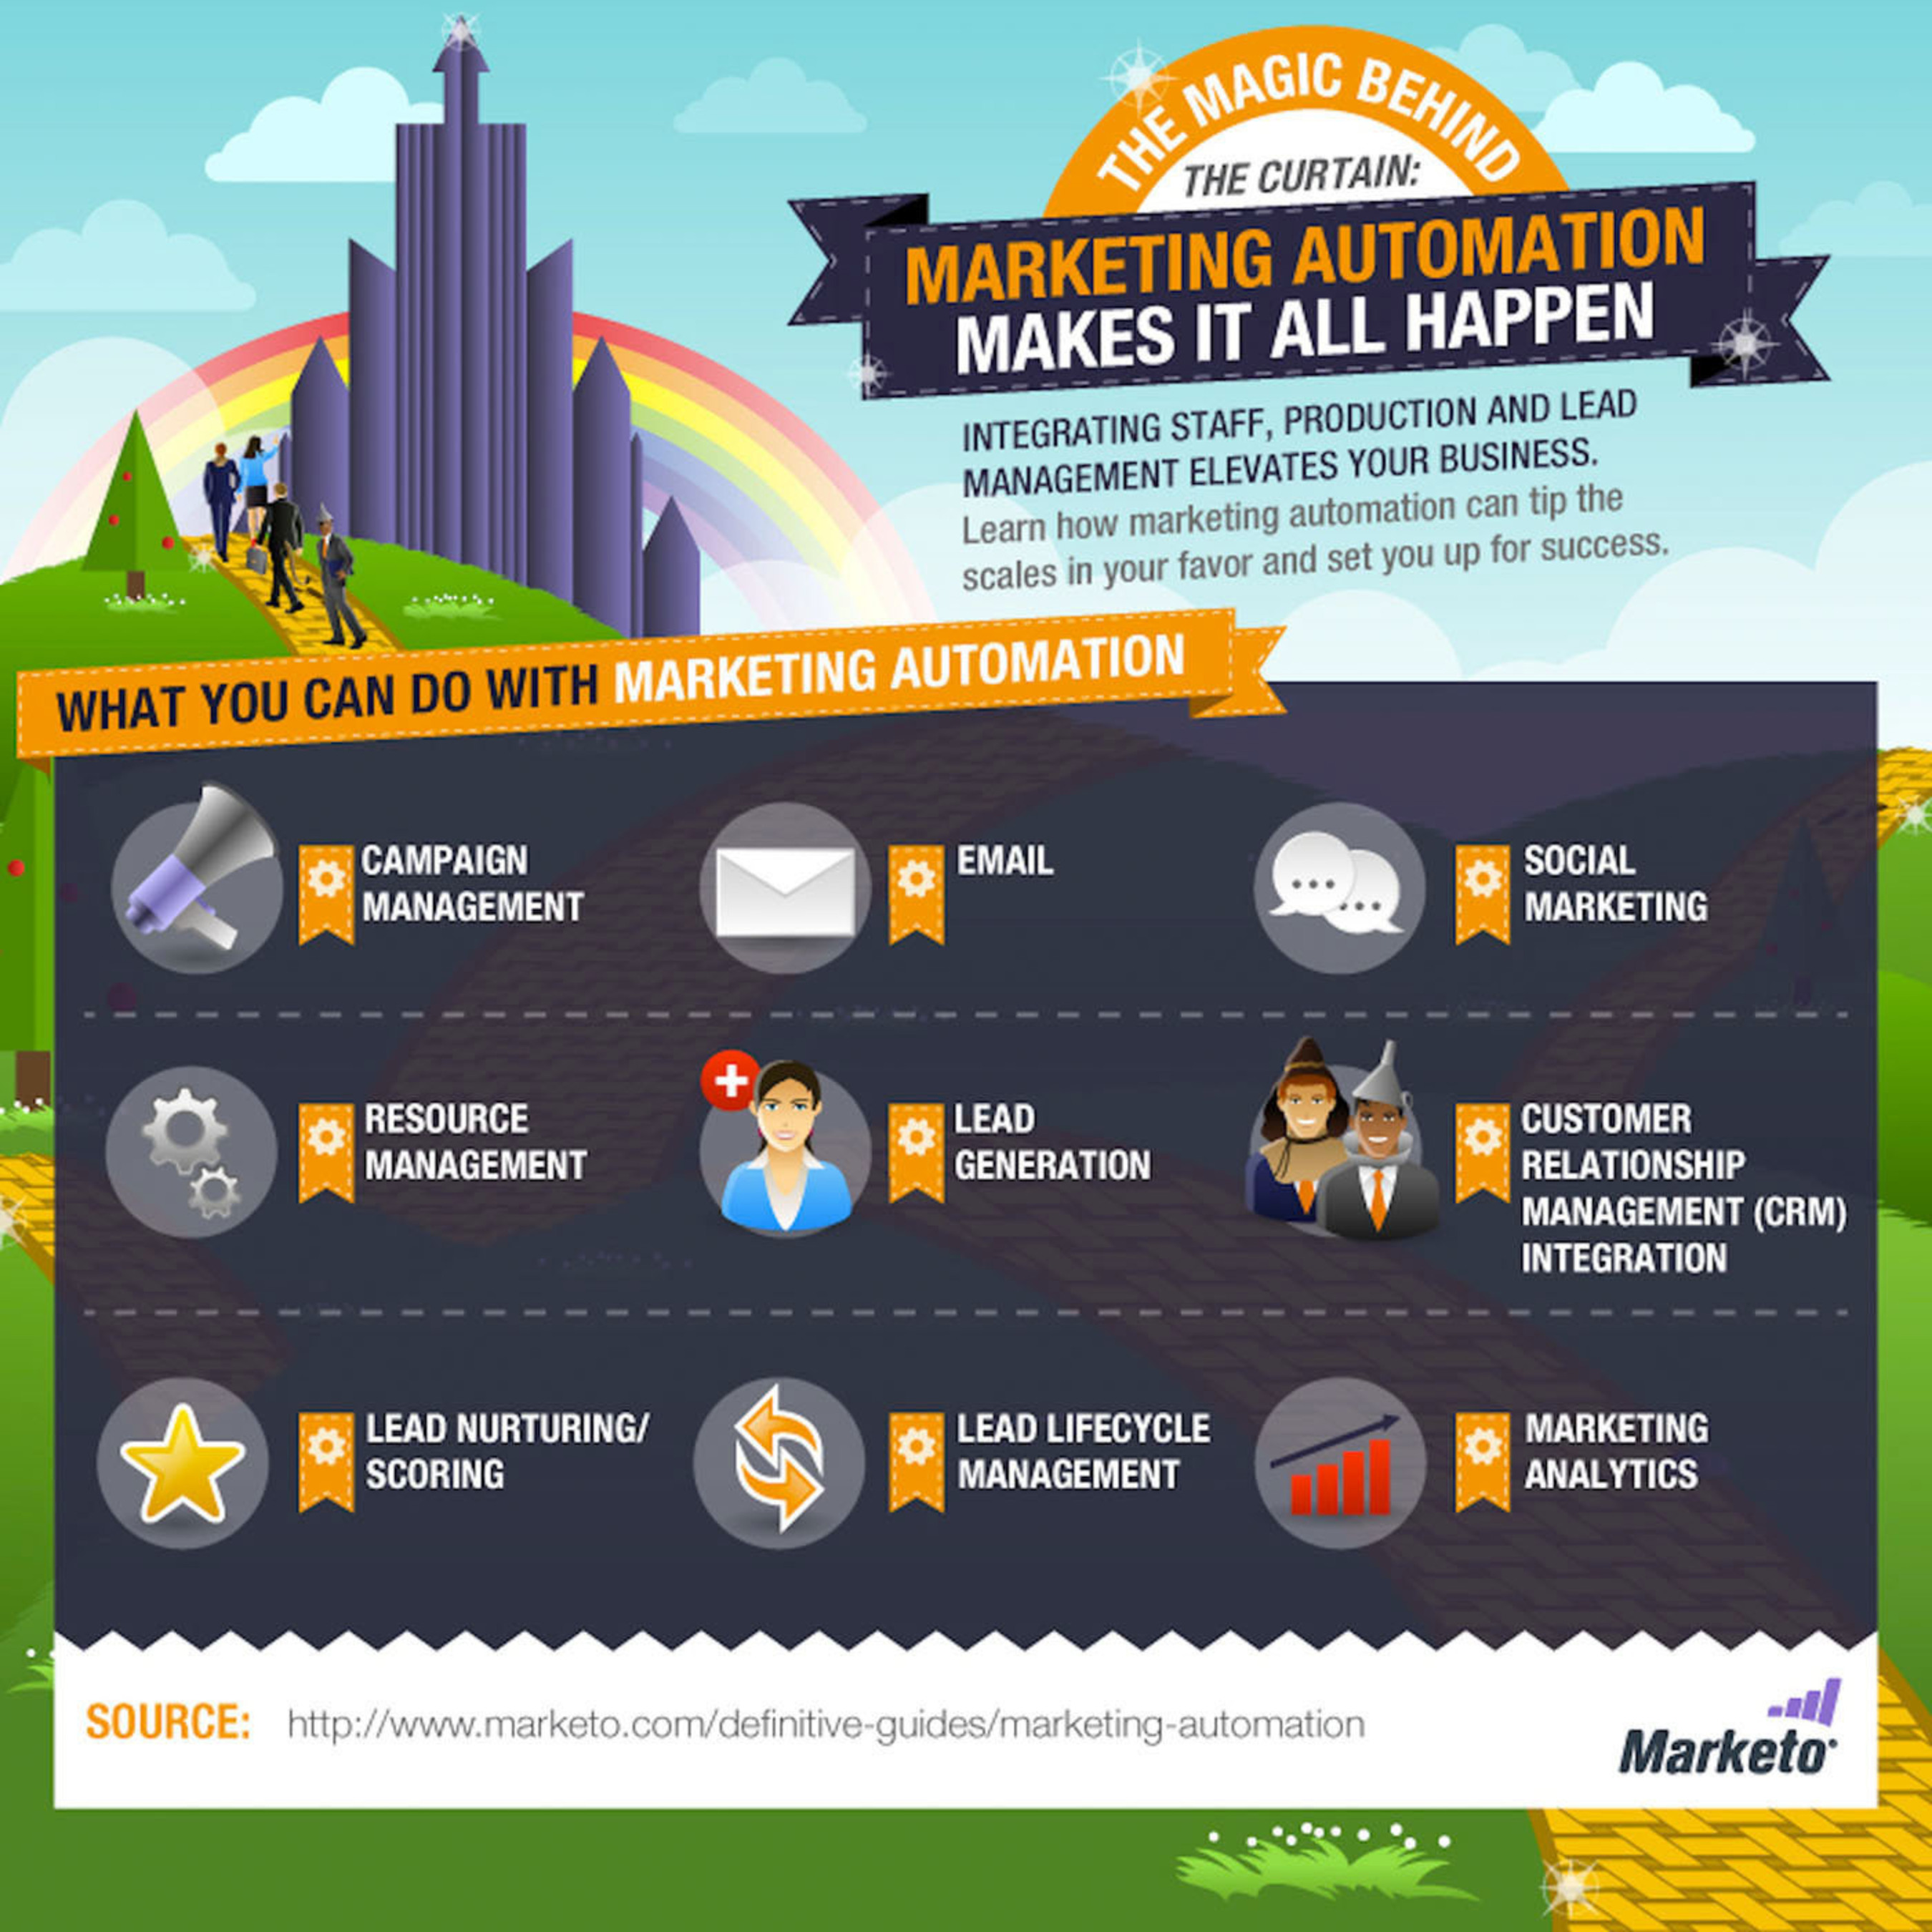 Marketo Delivers 'The Definitive Guide to Marketing Automation,' Explains Value of 'Must-Have'